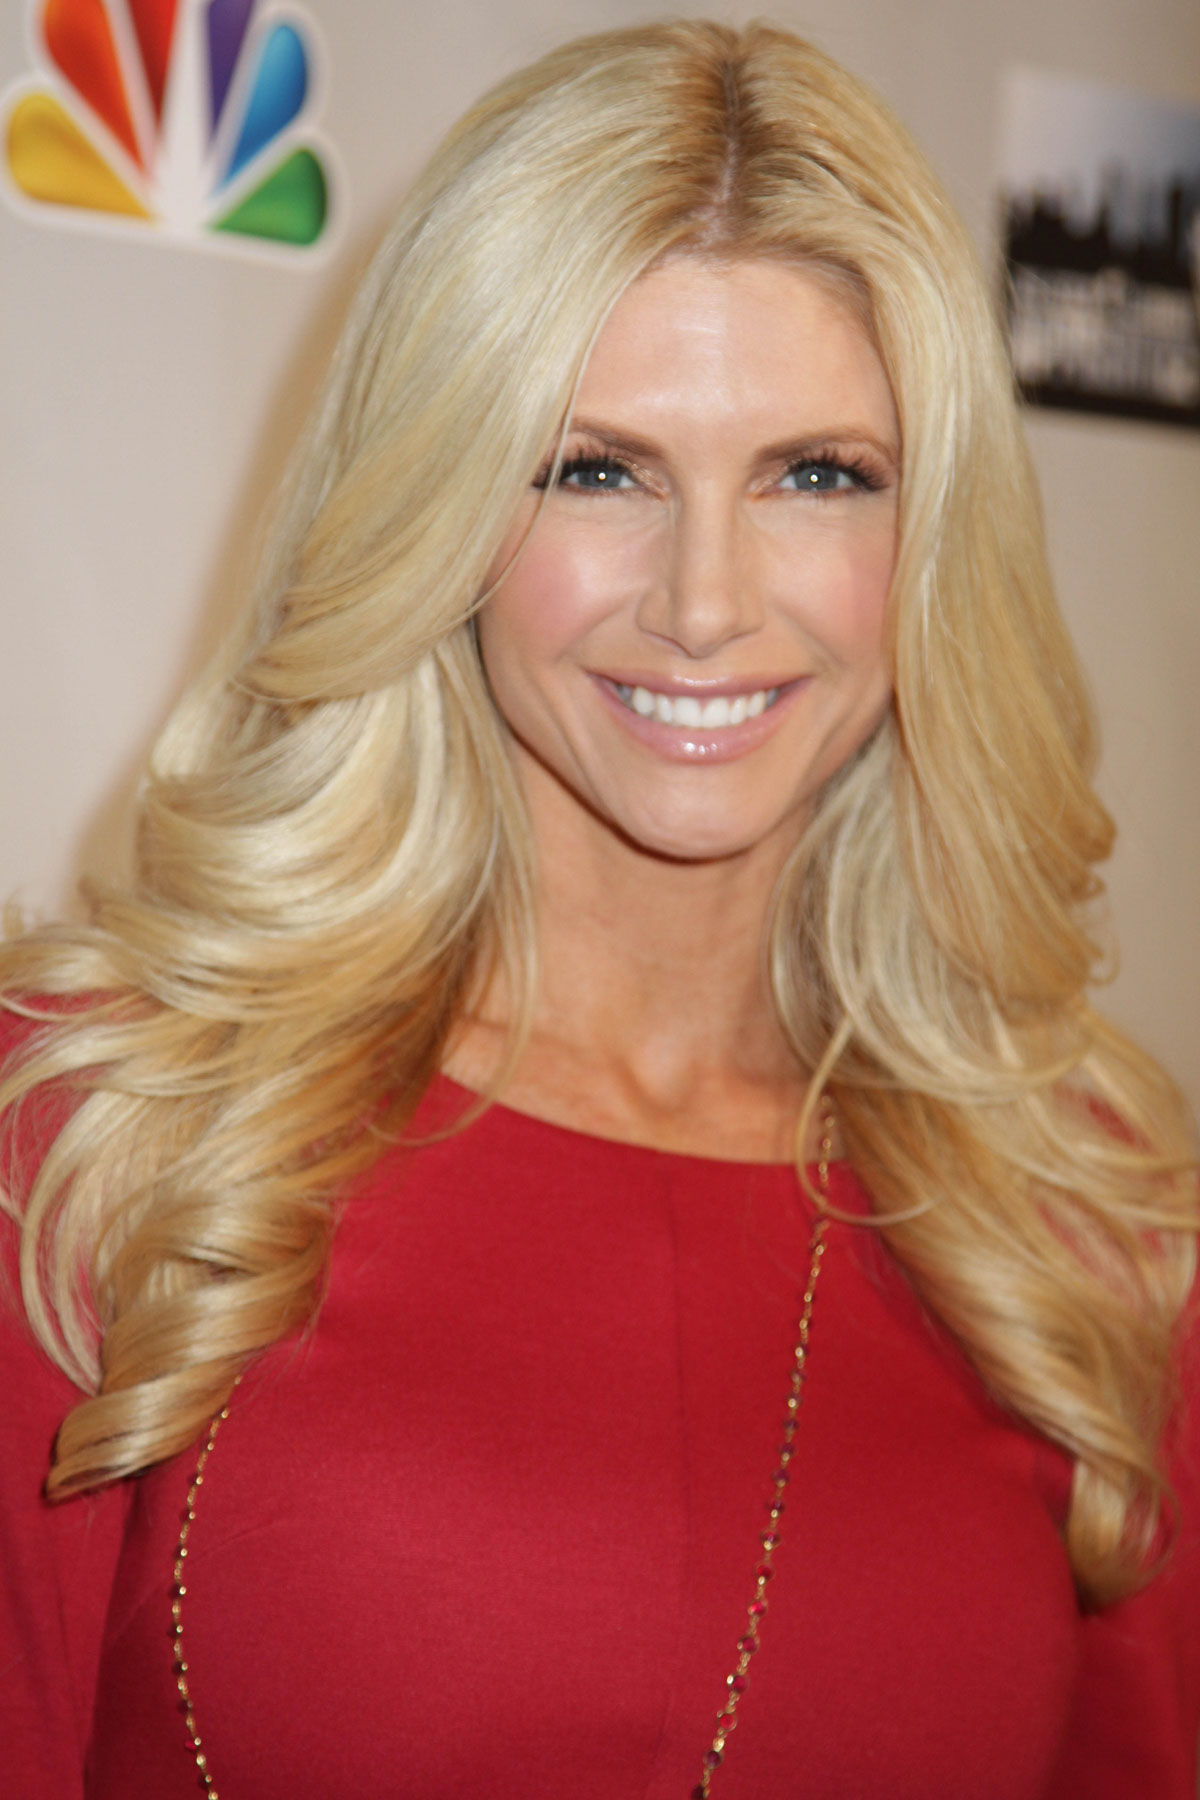 BRANDE RODERICK at All-Star Celebrity Apprentice Announcement